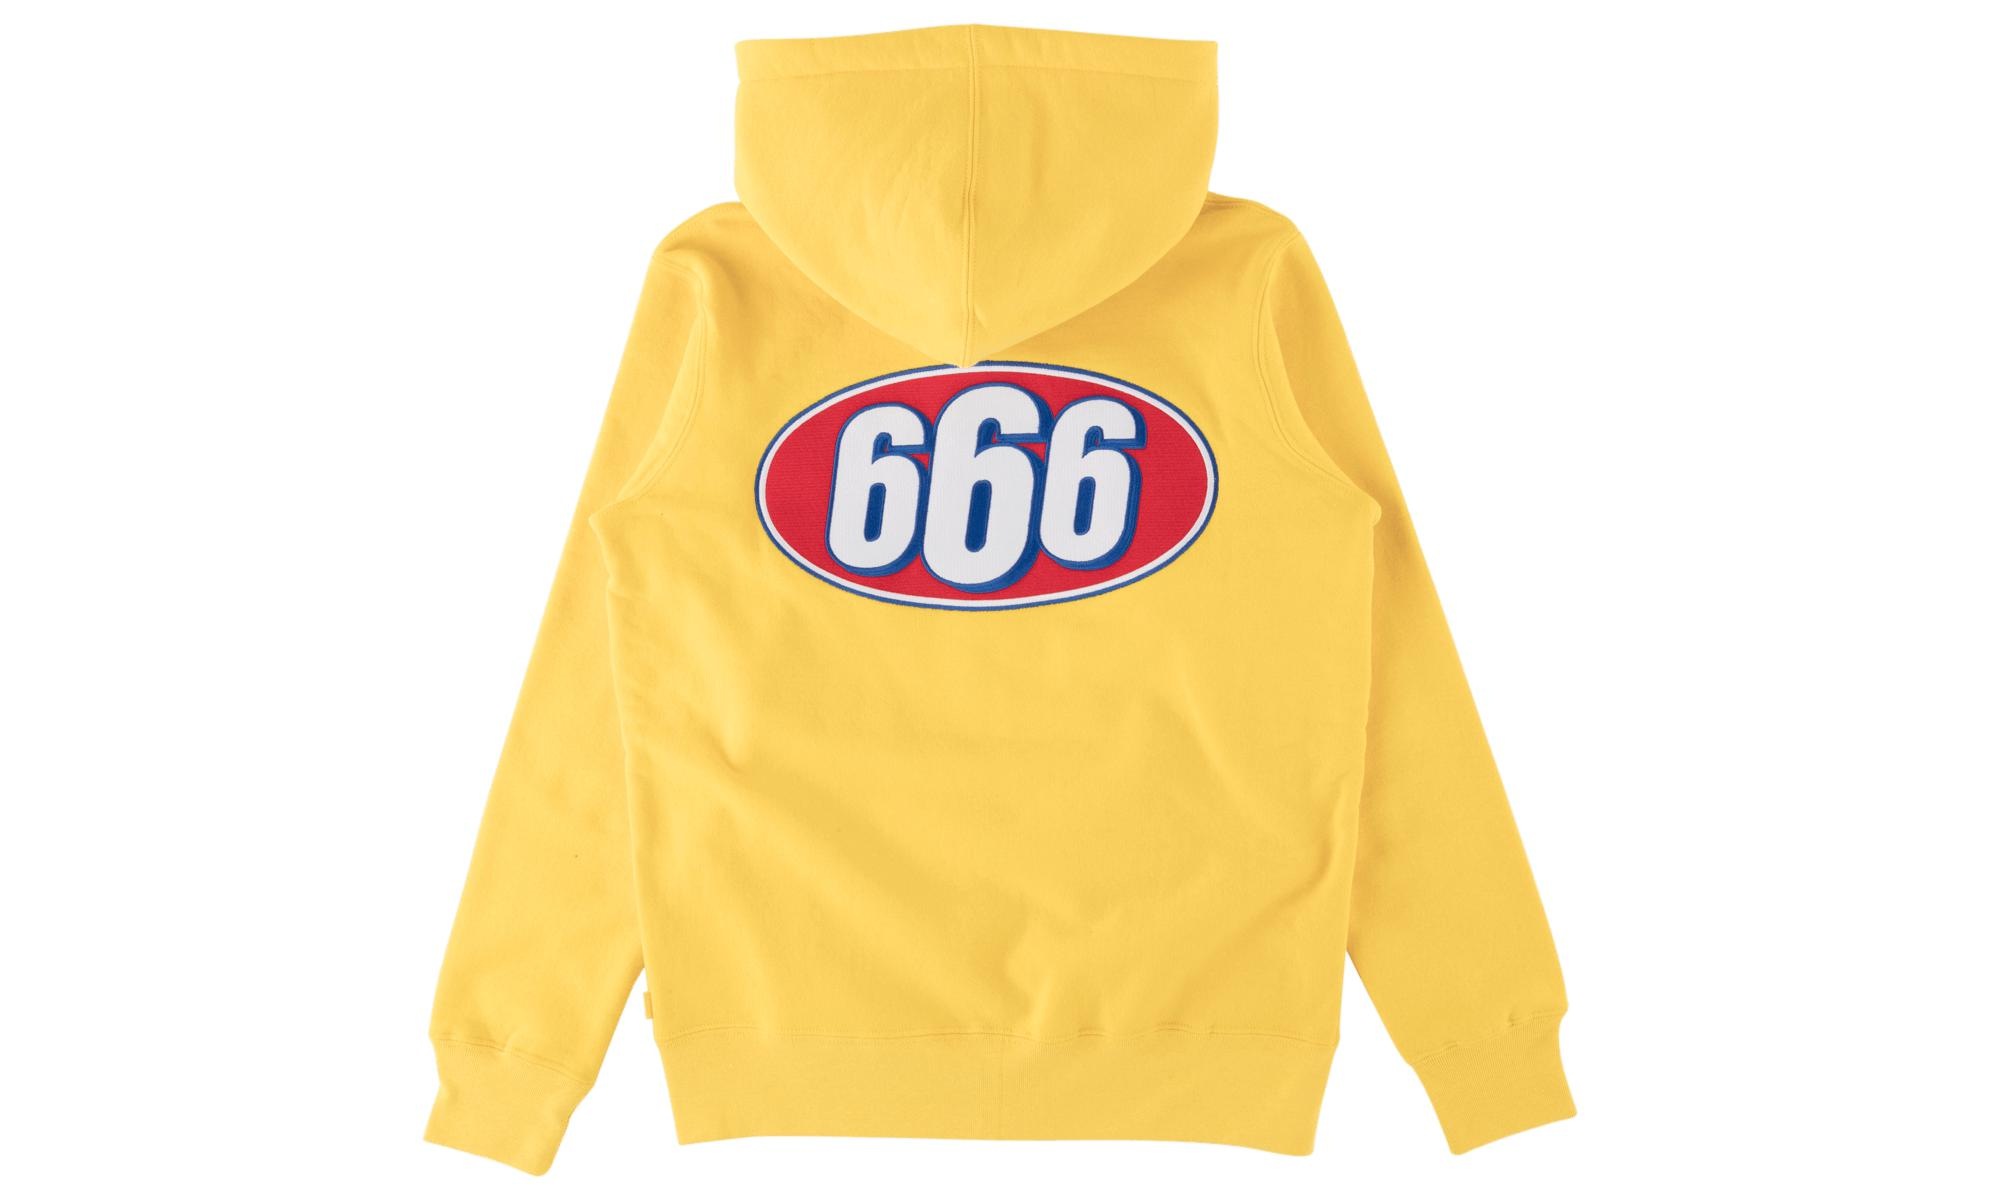 7d14e7d7105e Supreme 666 Zip-up Sweatshirt in Yellow for Men - Save 8% - Lyst